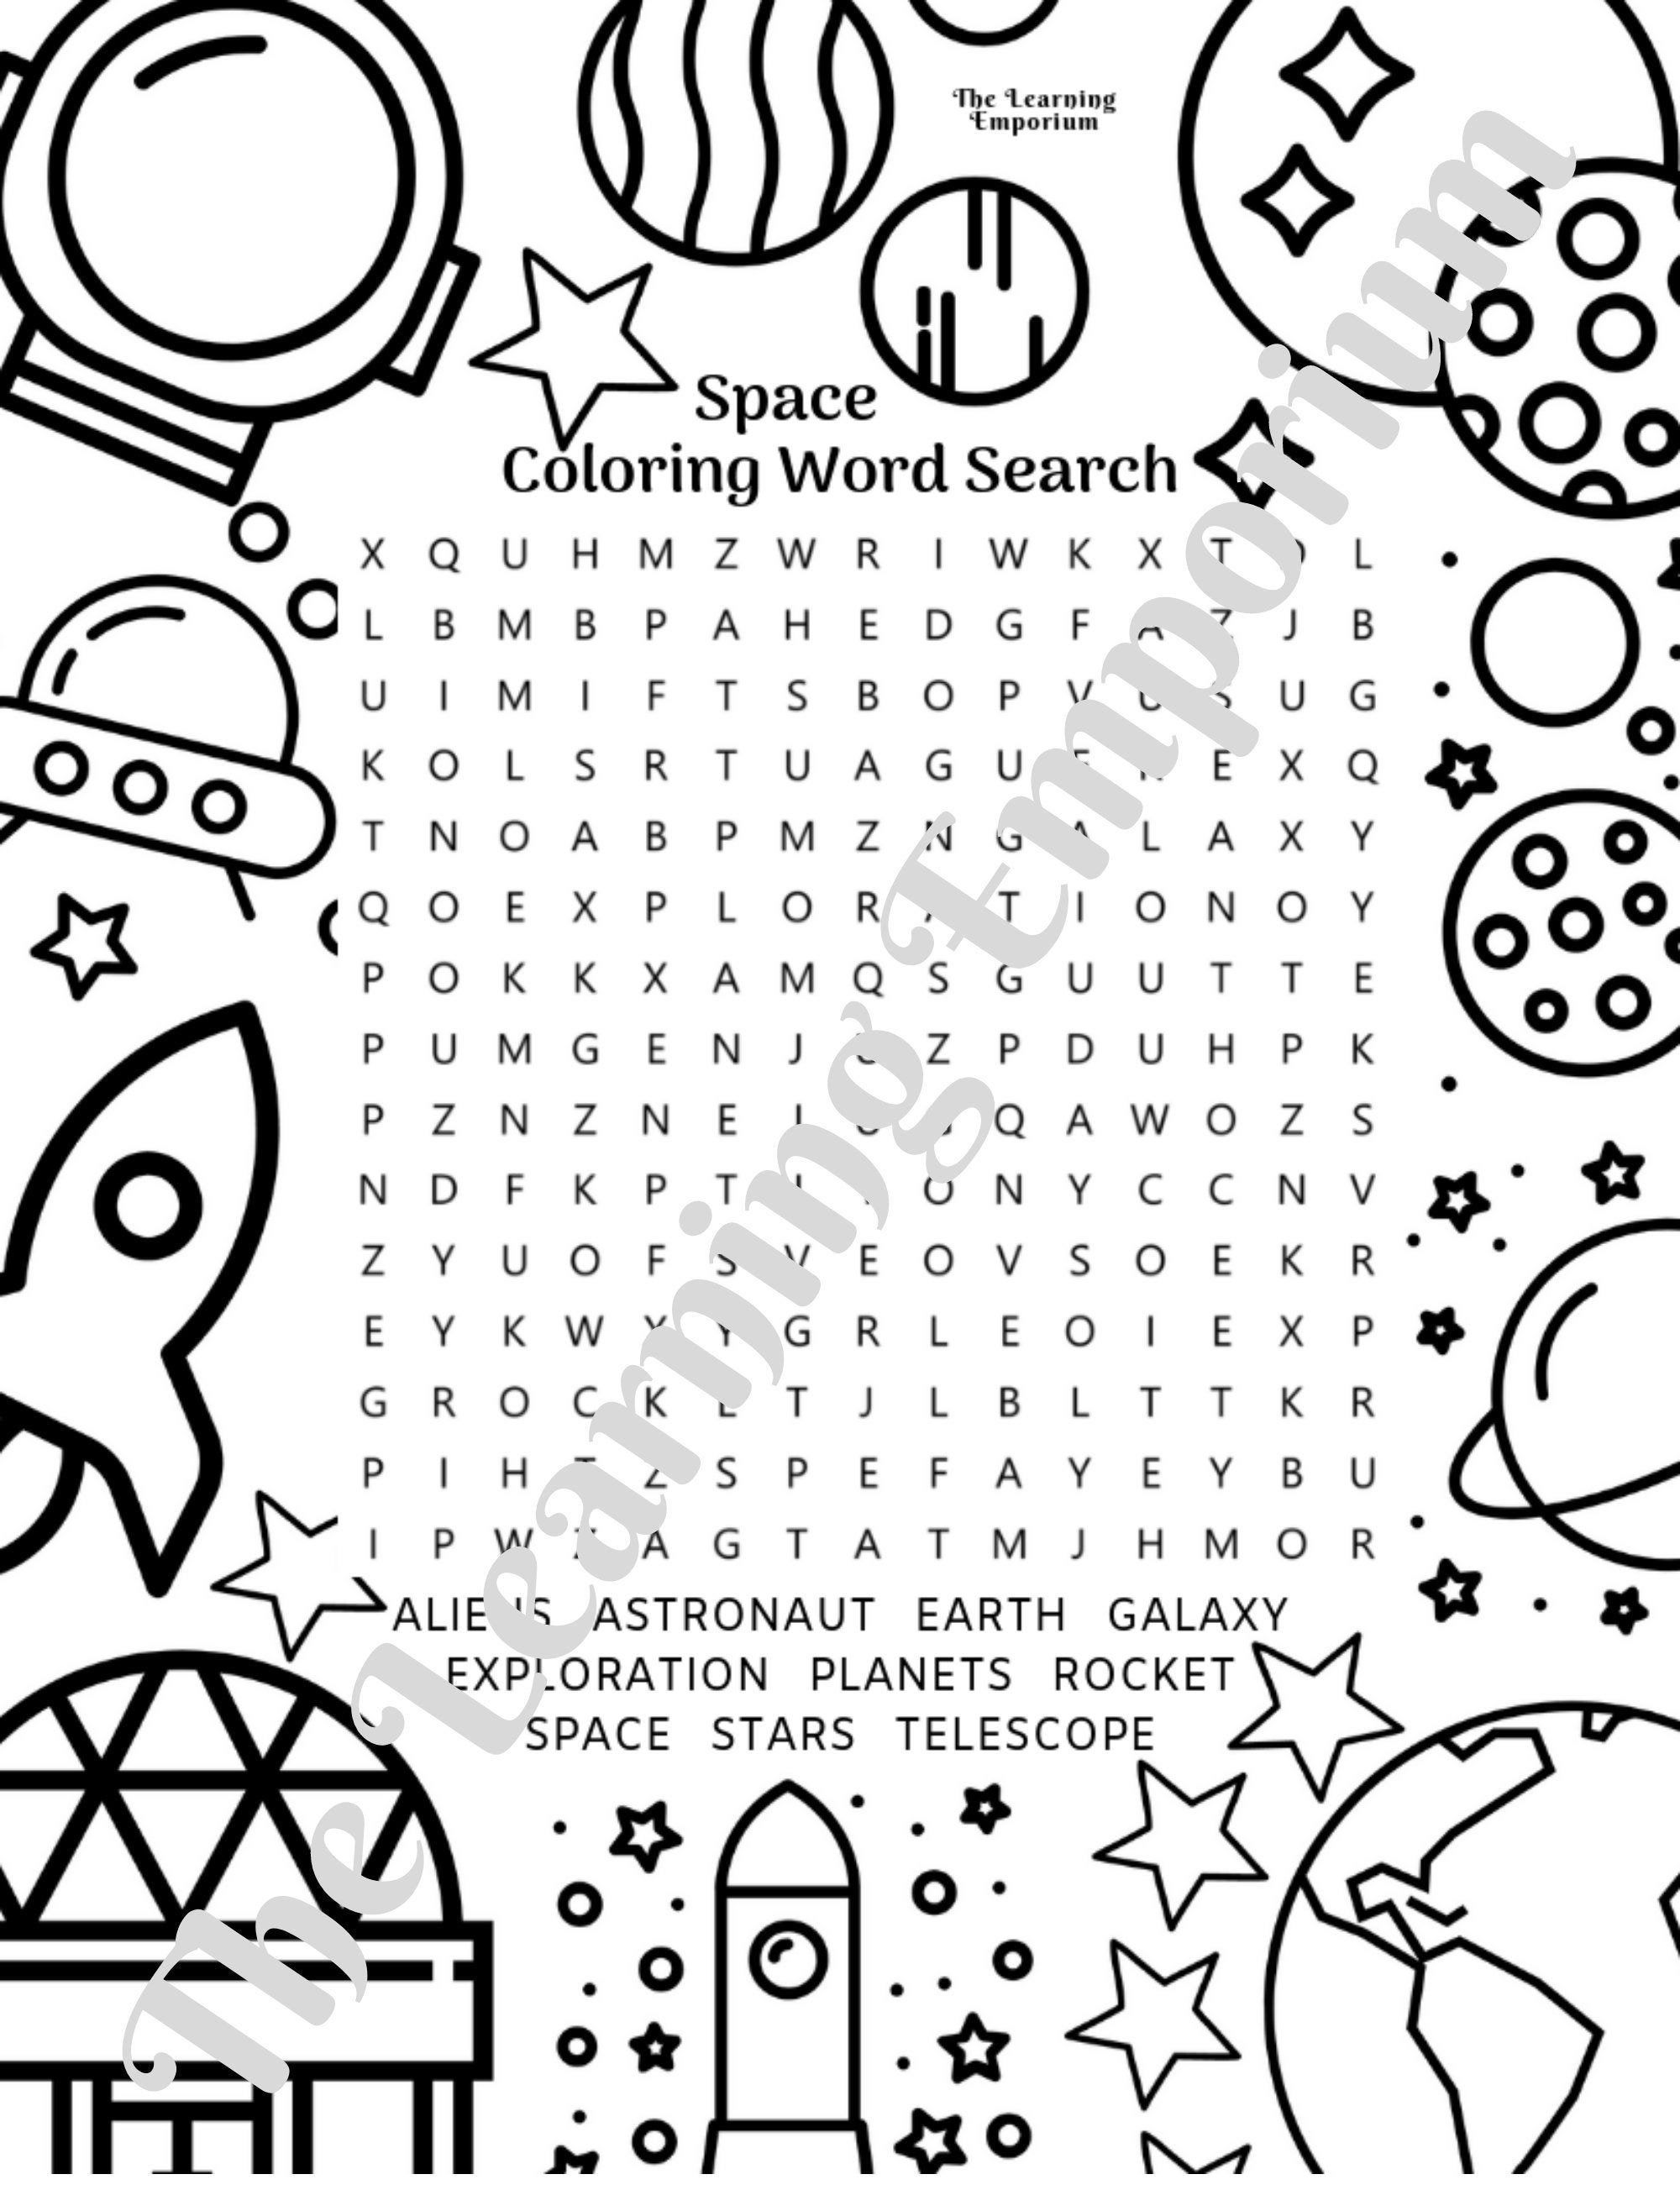 Coloring Word Search